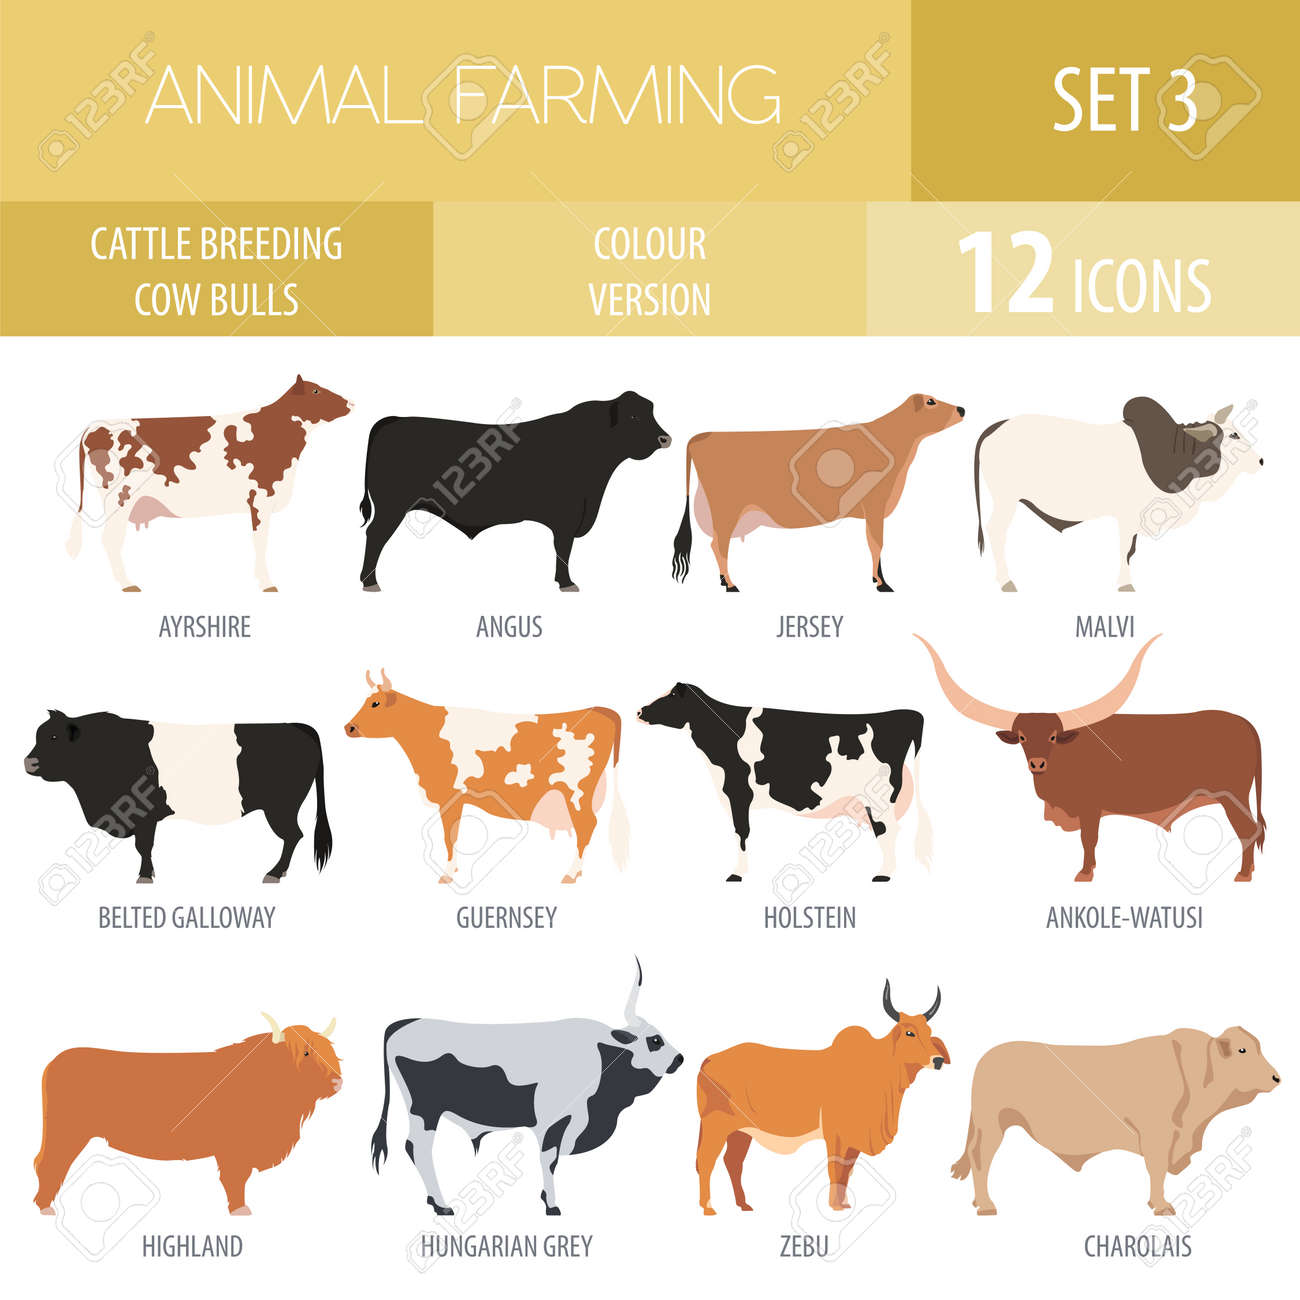 cattle breeding farming cow bulls breed icon set flat design